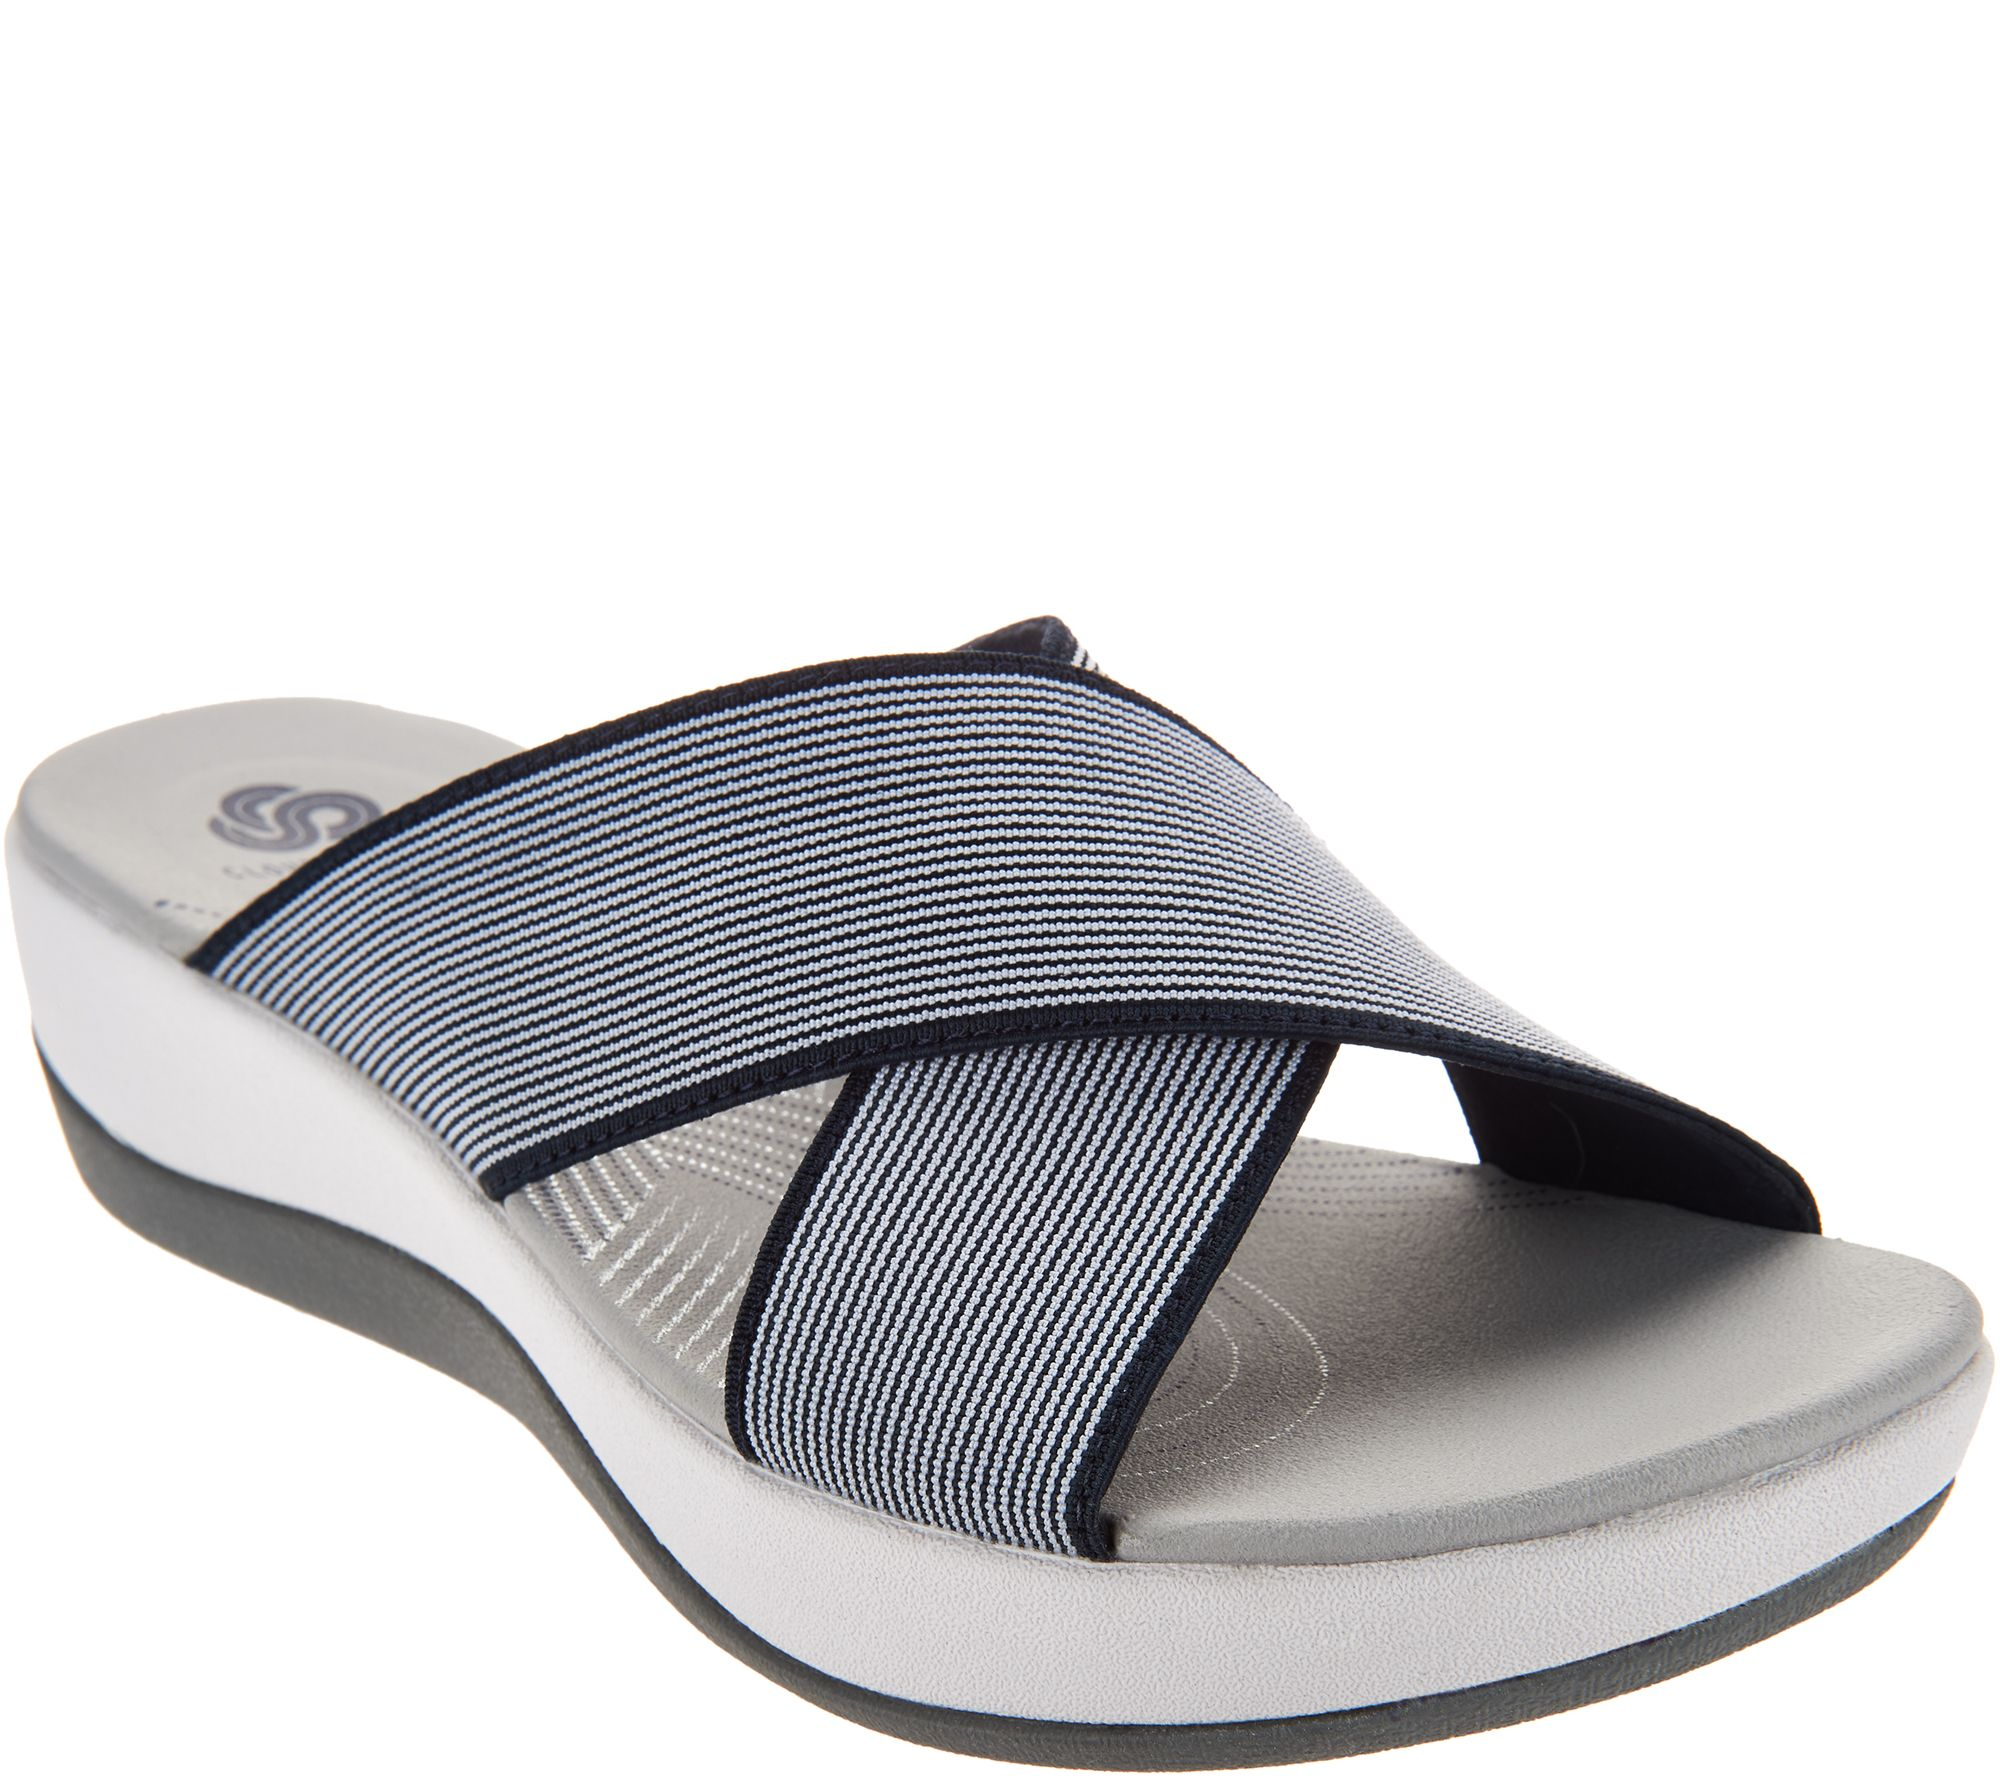 b033071c2fe9 CLOUDSTEPPERS by Clarks Cross Band Slide Sandals - Arla Elin - Page 1 —  QVC.com